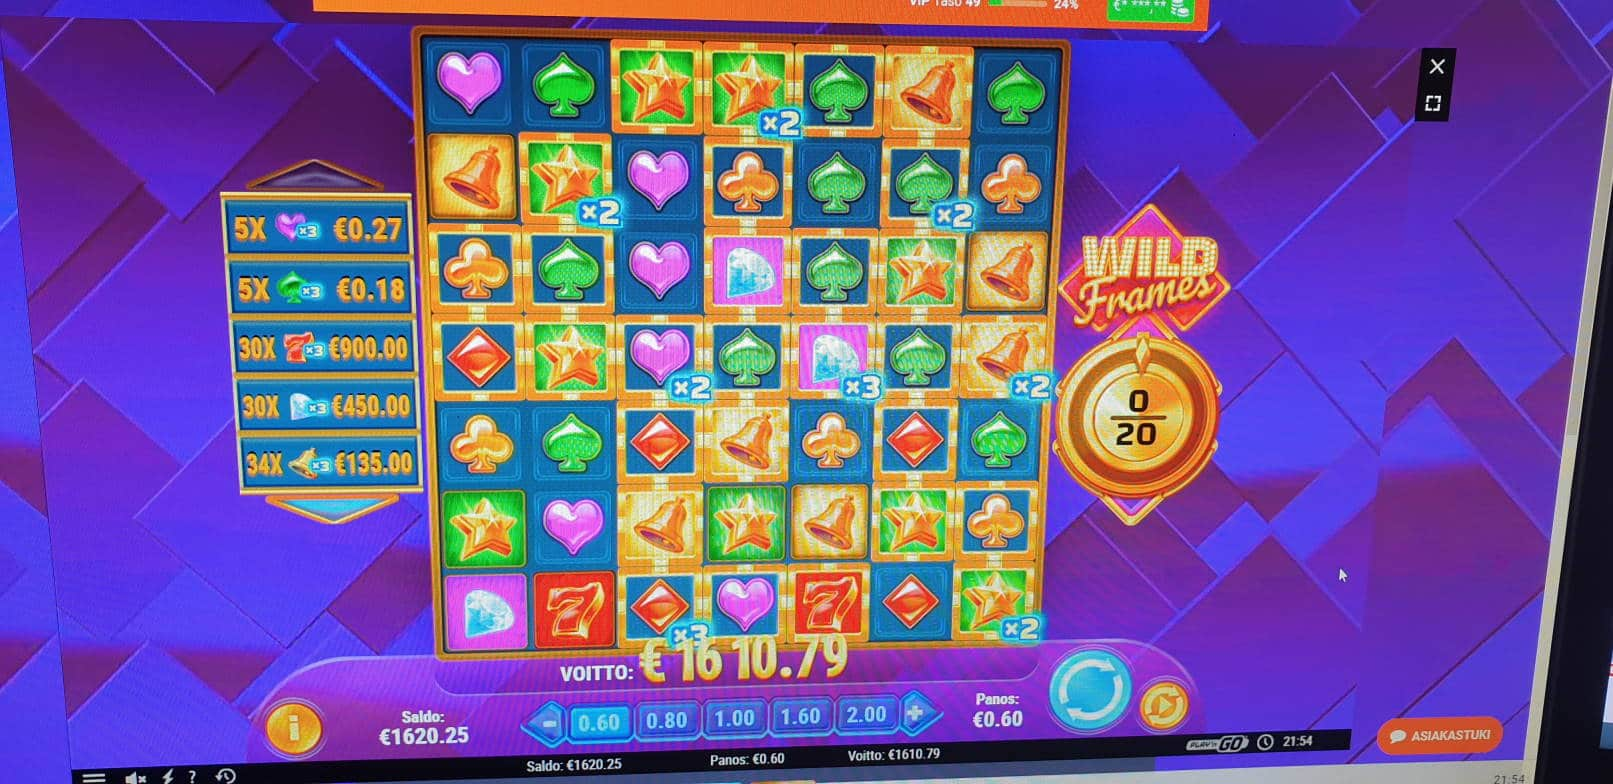 Wild Frames Casino win picture by Javelinas 13.10.2020 1610.79e 2684X Leovegas